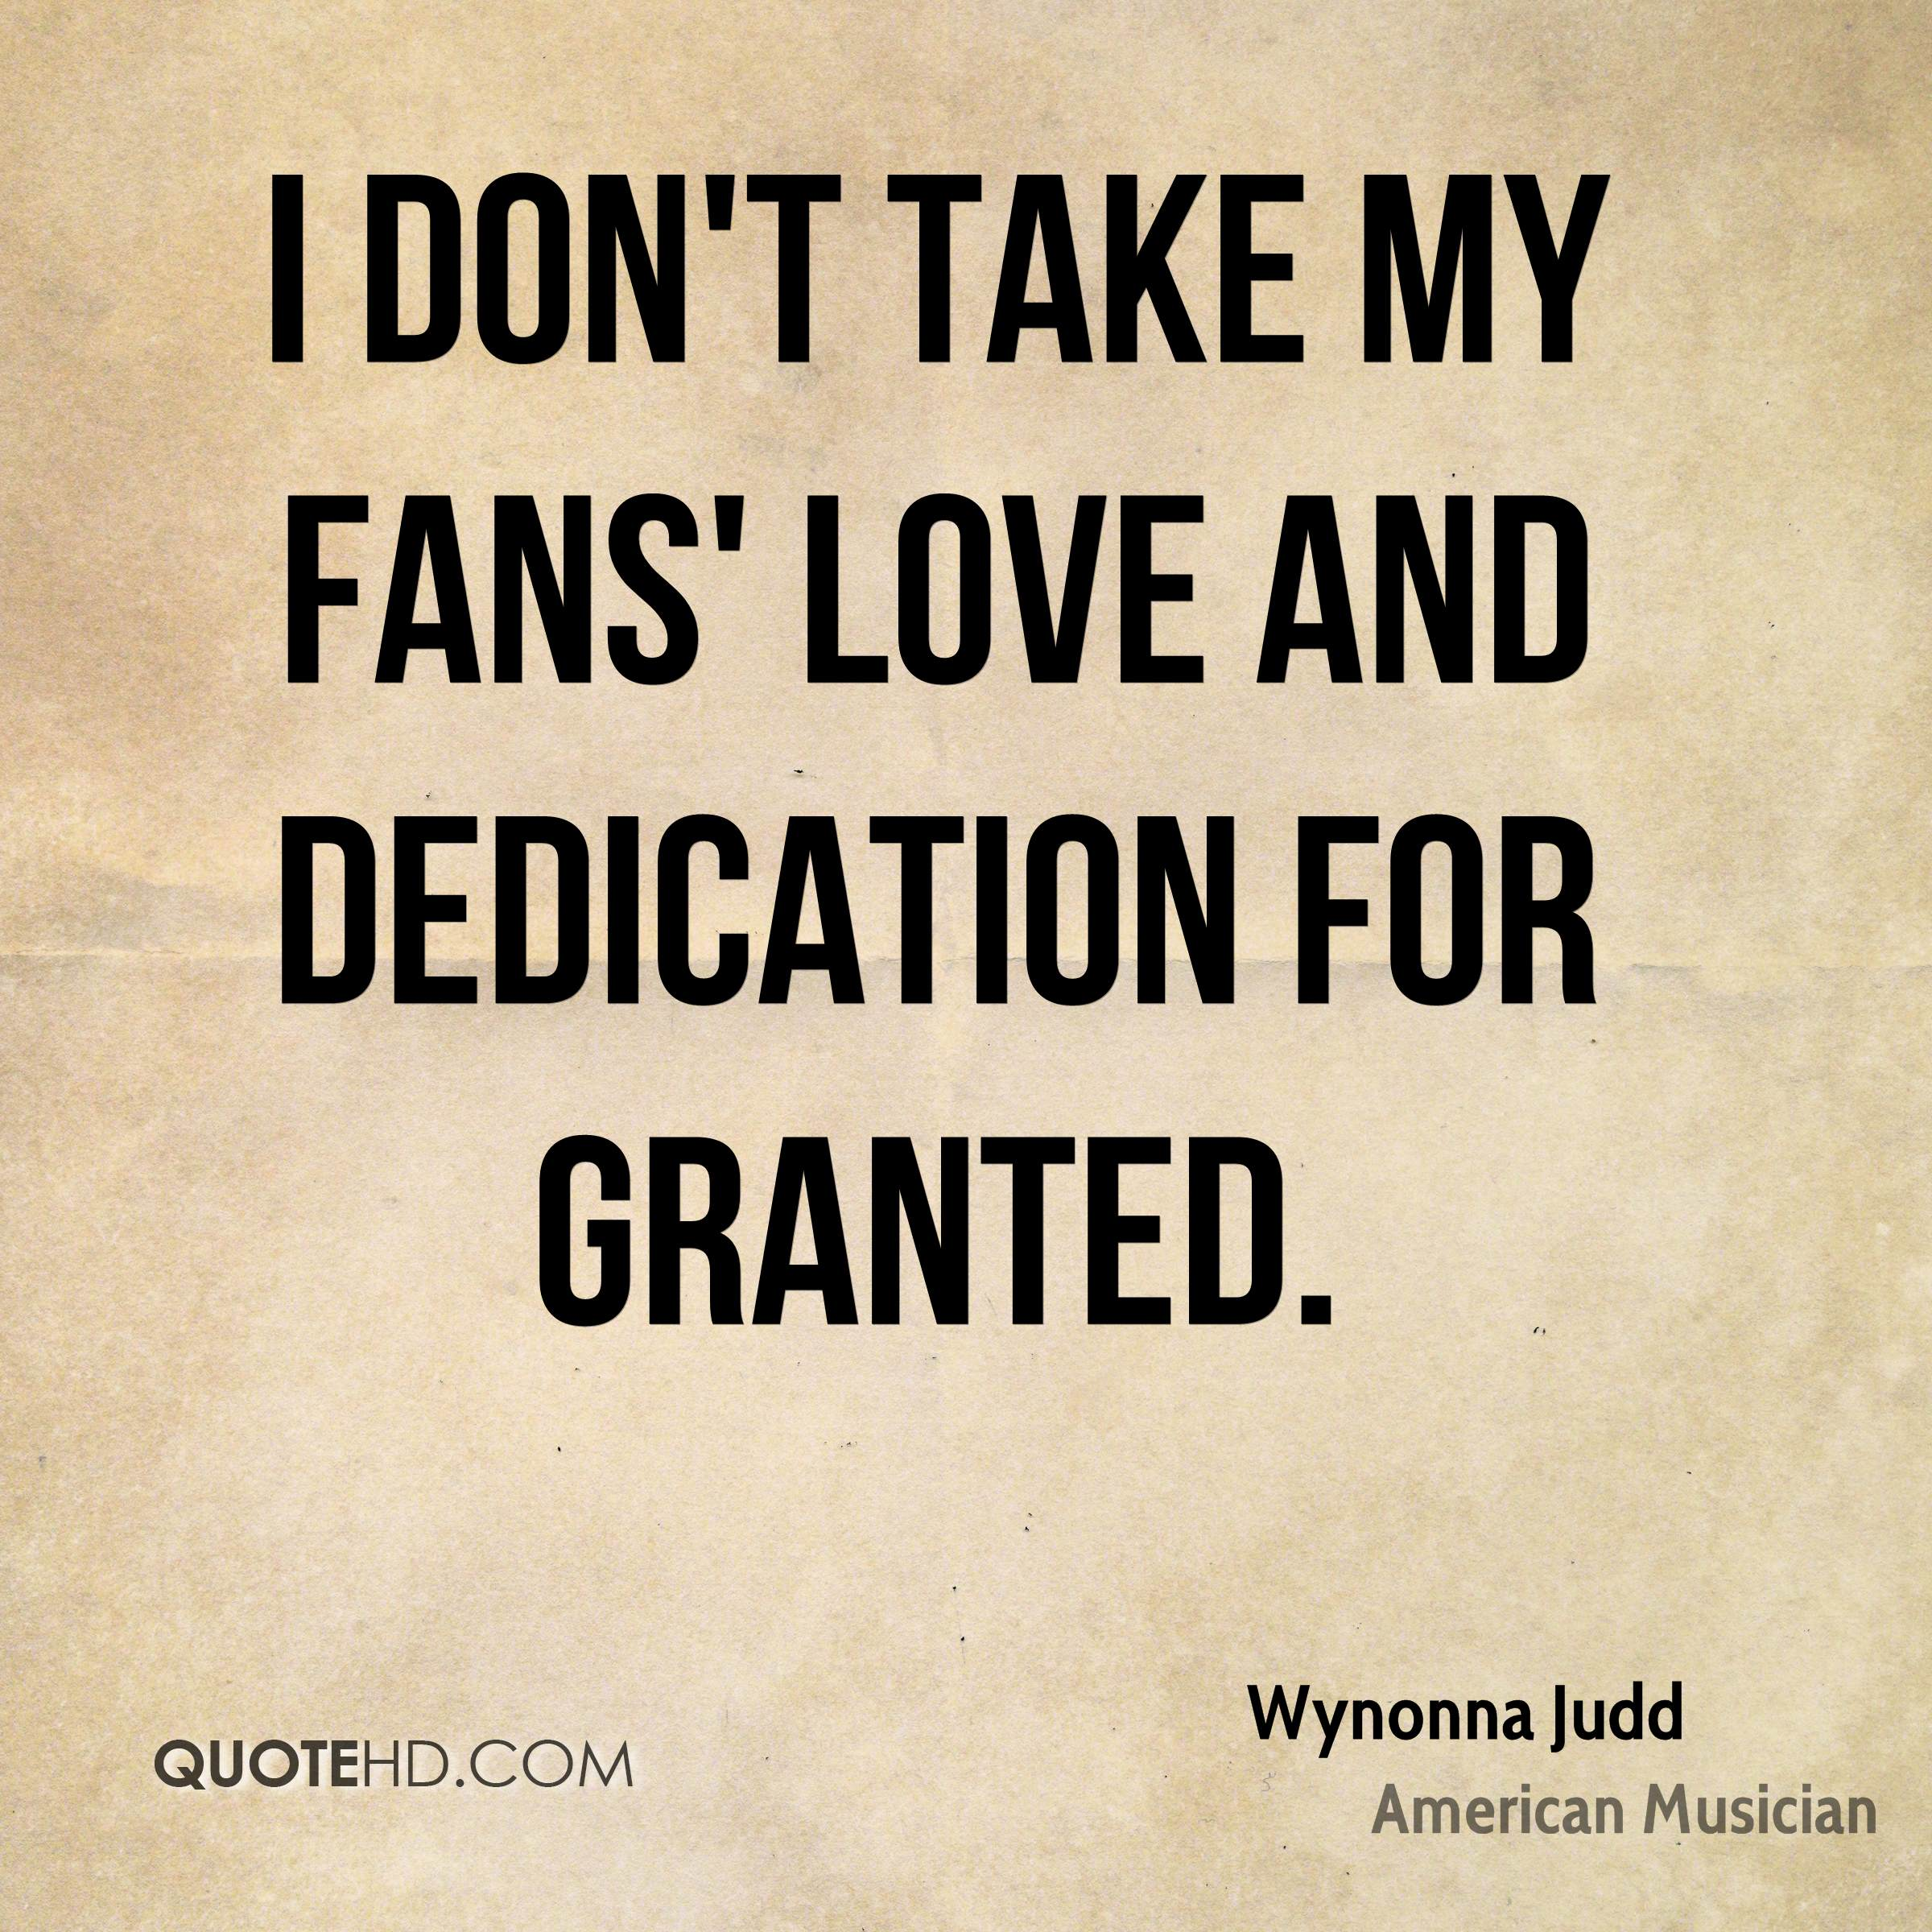 I don't take my fans' love and dedication for granted.